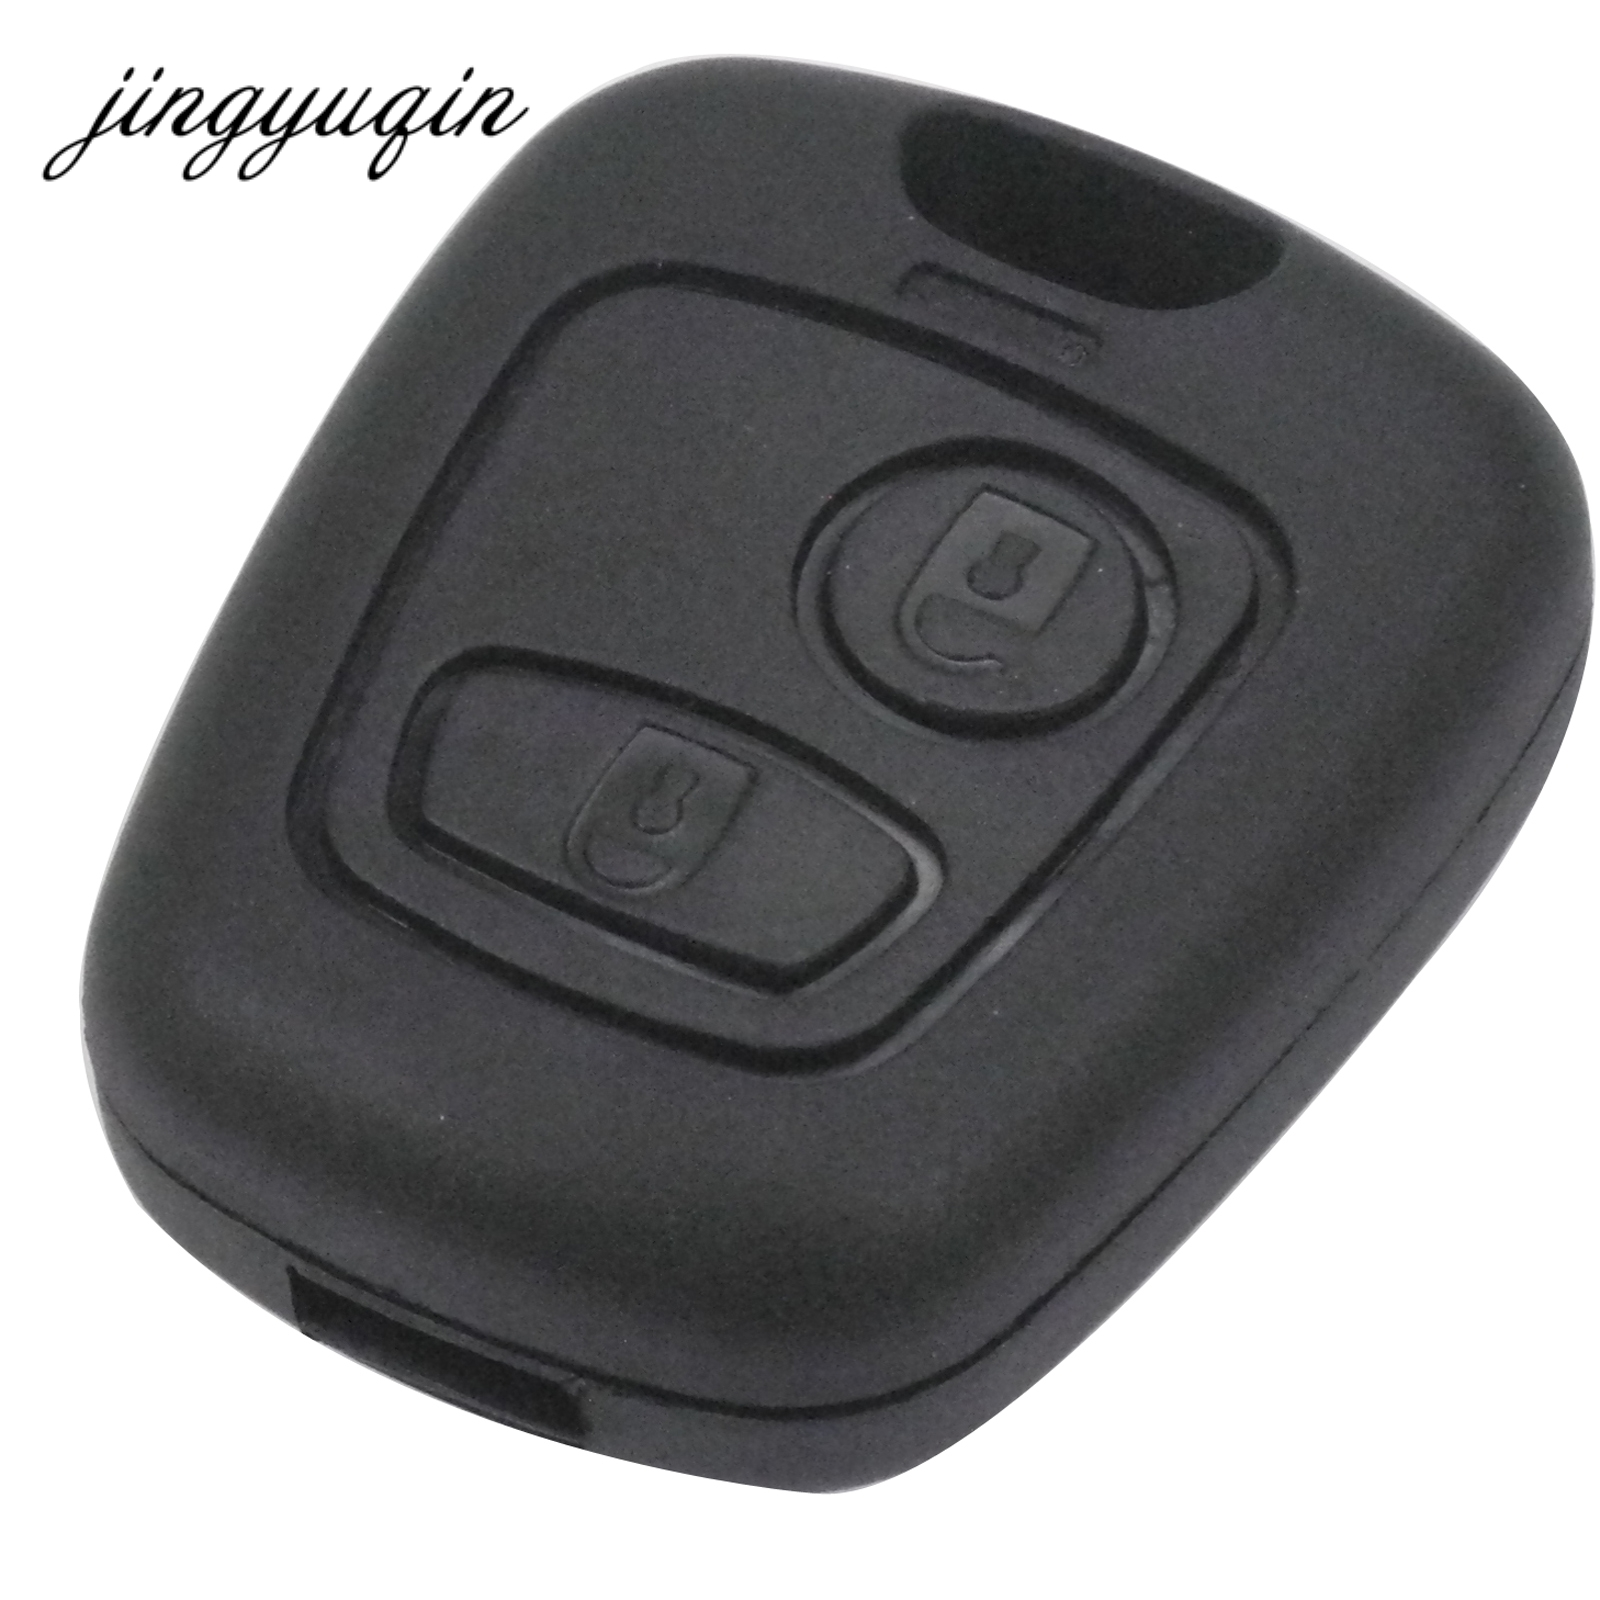 jingyuqin Car Remote Key Shell For Citroen C1 C4 for Peugeot 107 207 307 407 206 306 406 Replacement No Blade Key Fob Casejingyuqin Car Remote Key Shell For Citroen C1 C4 for Peugeot 107 207 307 407 206 306 406 Replacement No Blade Key Fob Case